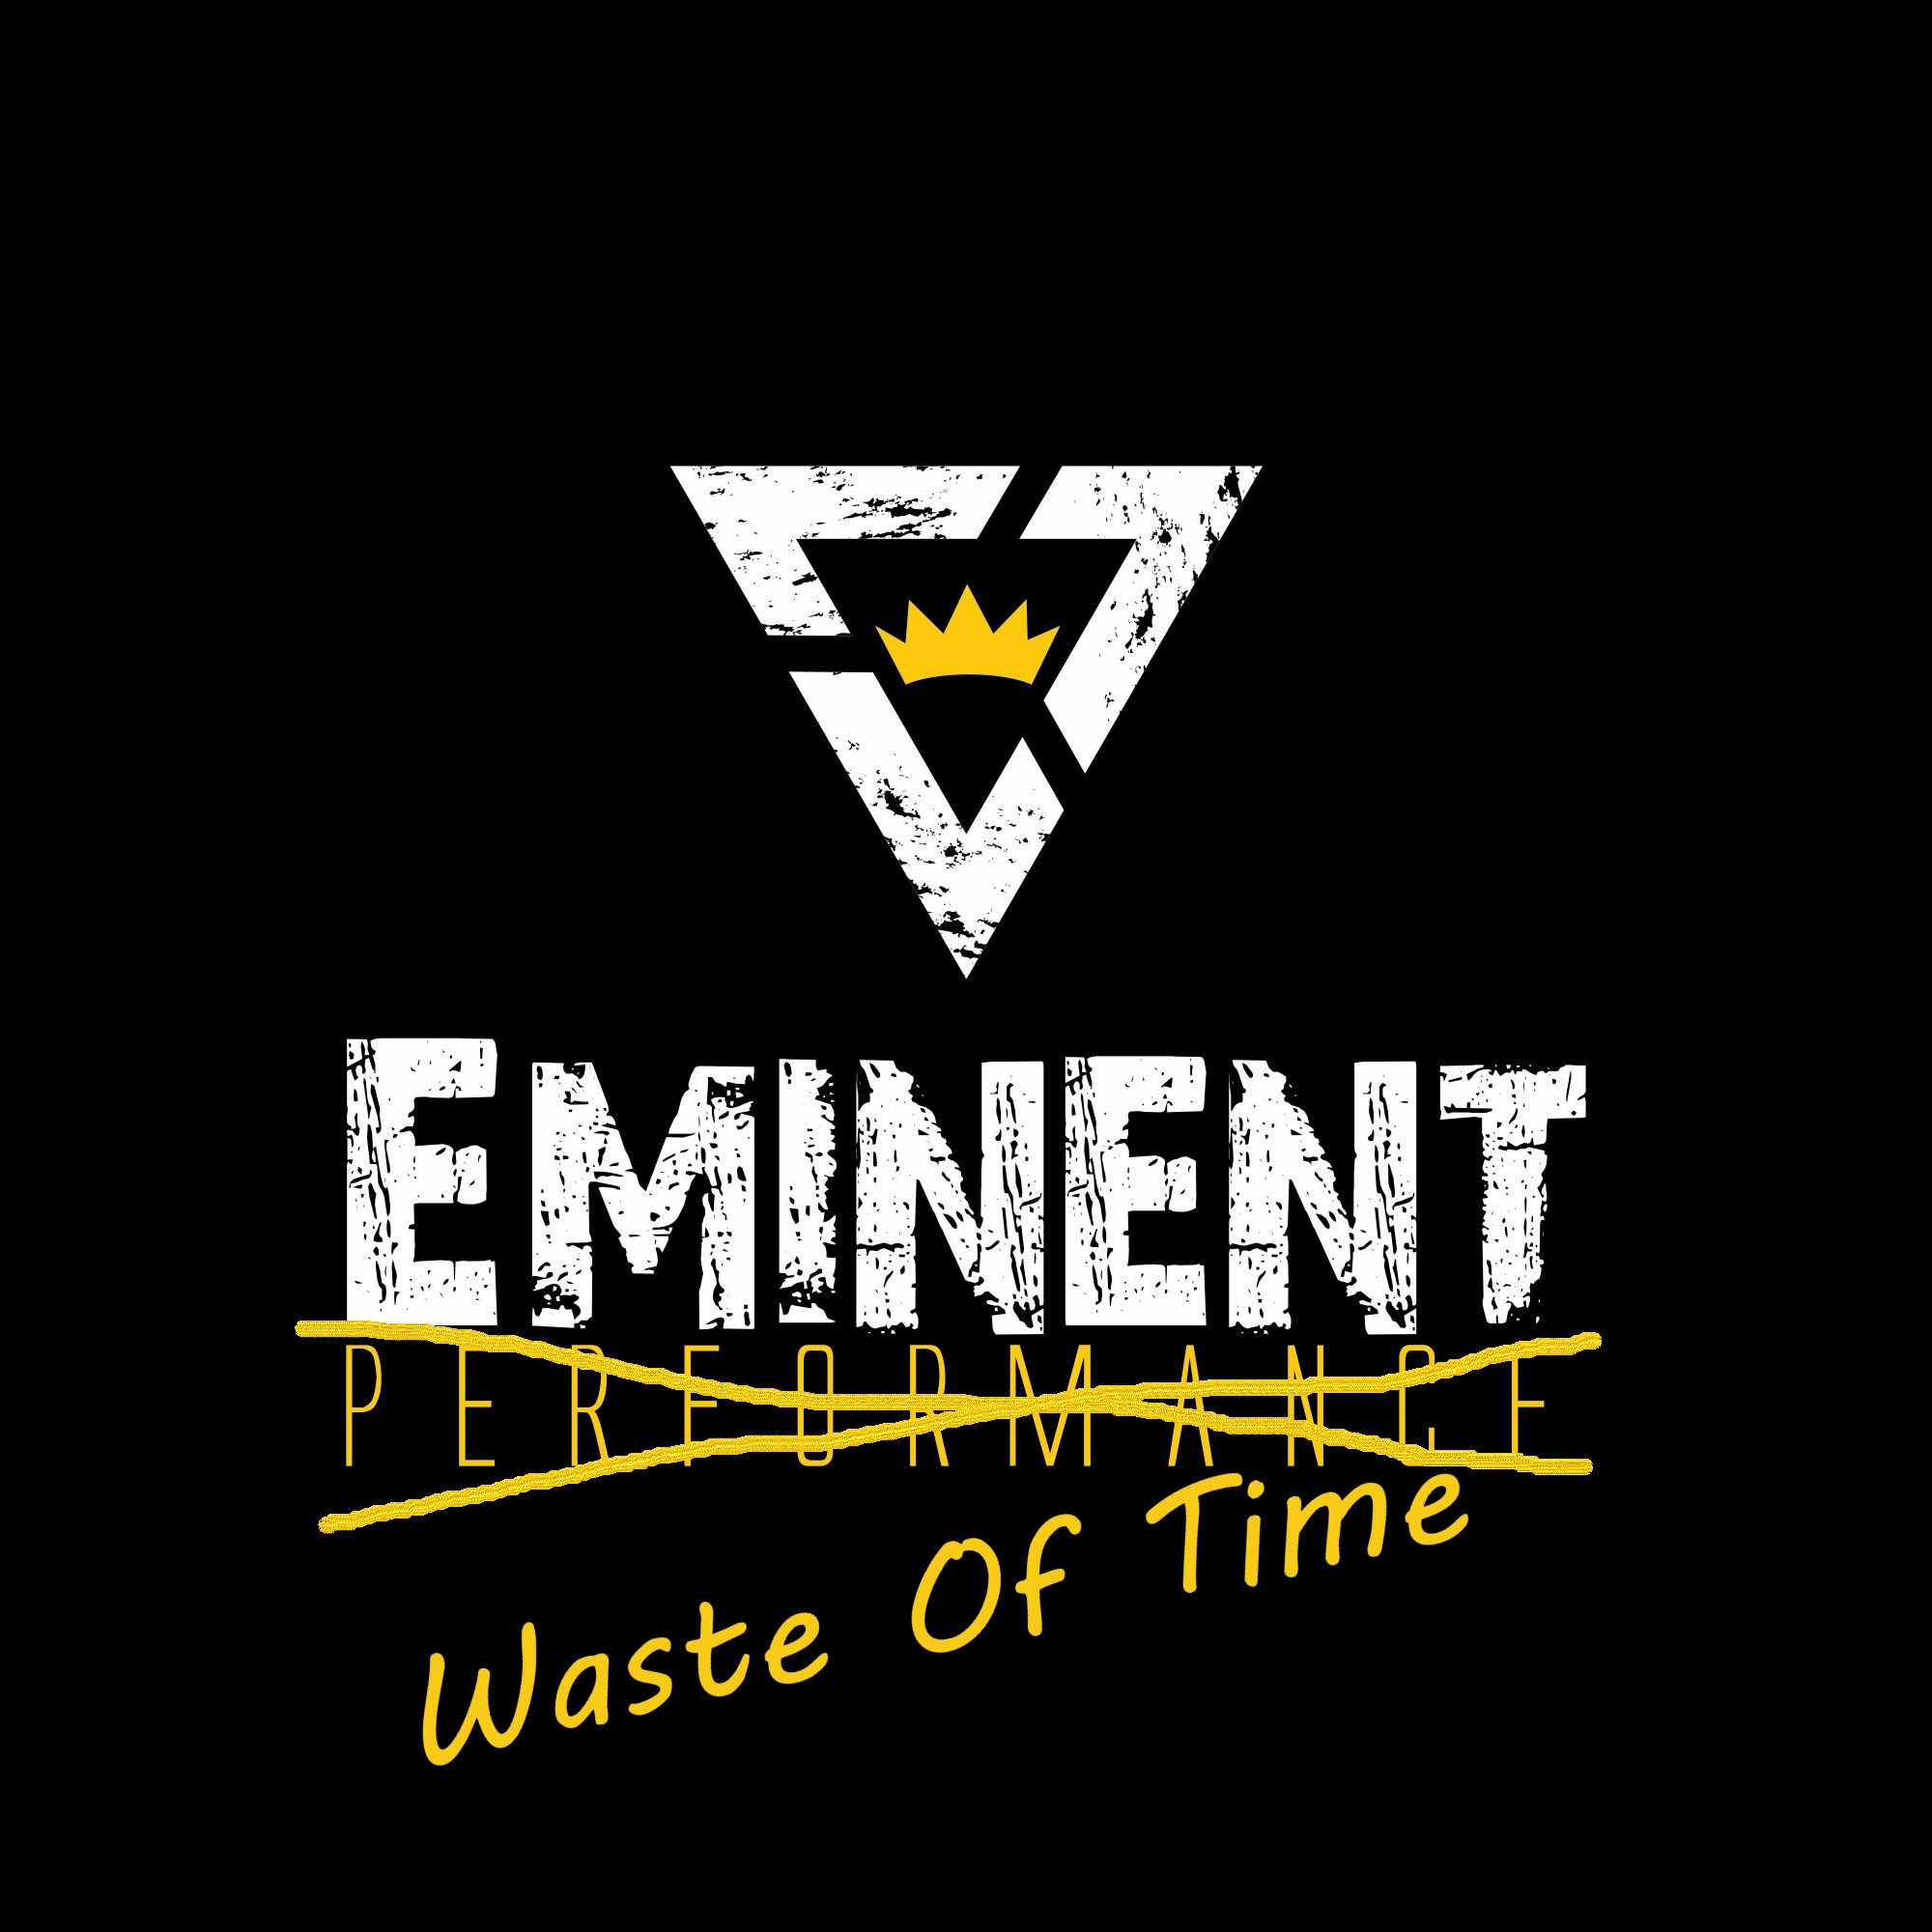 Eminent Waste of Time